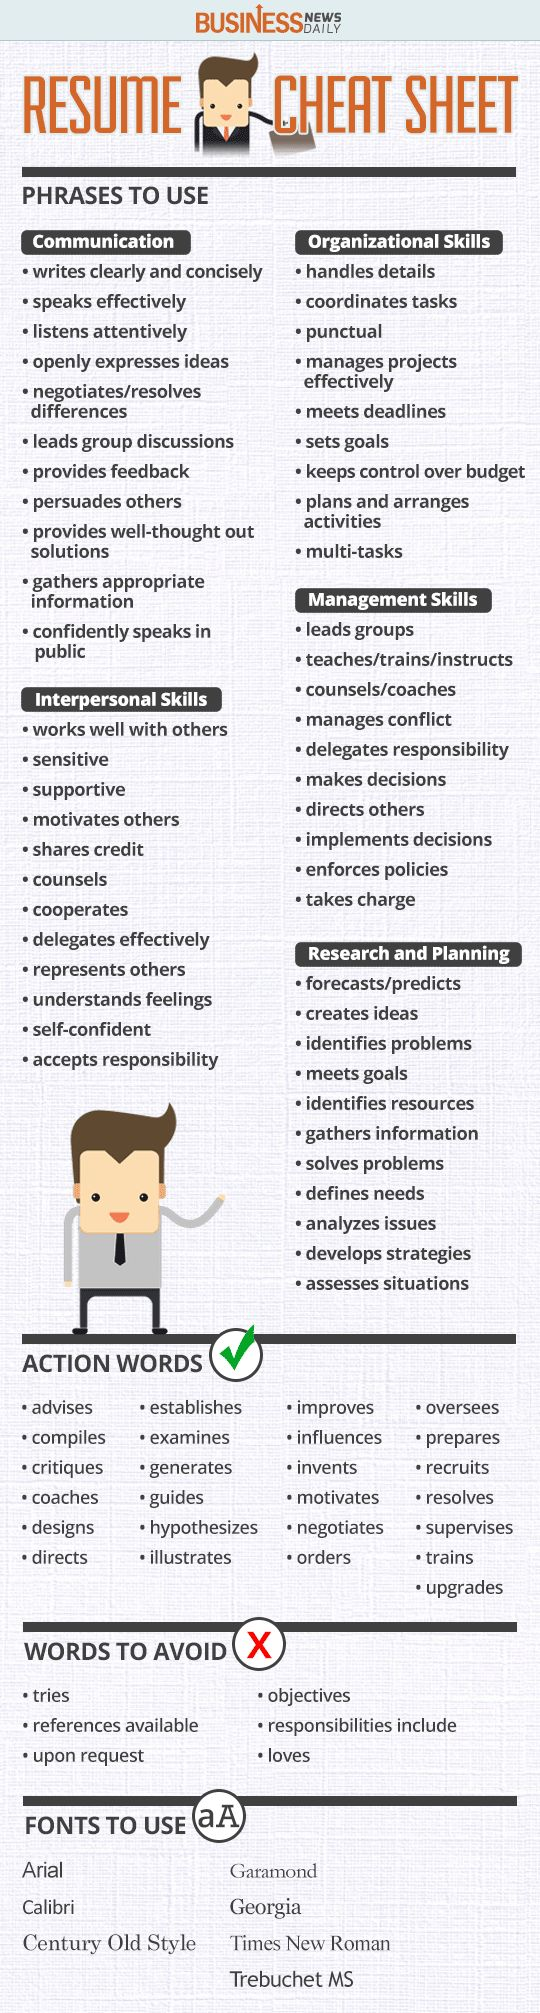 Opposenewapstandardsus  Inspiring  Ideas About Resume On Pinterest  Cv Format Resume  With Glamorous Resume Cheat Sheet Infographic Andrews Almost Done With A Complete Unit On Employment Which With Nice Proper Font Size For Resume Also Resume Formatting Word In Addition One Day Resume And Undergraduate Resume Sample As Well As Lab Manager Resume Additionally Resumes For Medical Assistant From Pinterestcom With Opposenewapstandardsus  Glamorous  Ideas About Resume On Pinterest  Cv Format Resume  With Nice Resume Cheat Sheet Infographic Andrews Almost Done With A Complete Unit On Employment Which And Inspiring Proper Font Size For Resume Also Resume Formatting Word In Addition One Day Resume From Pinterestcom